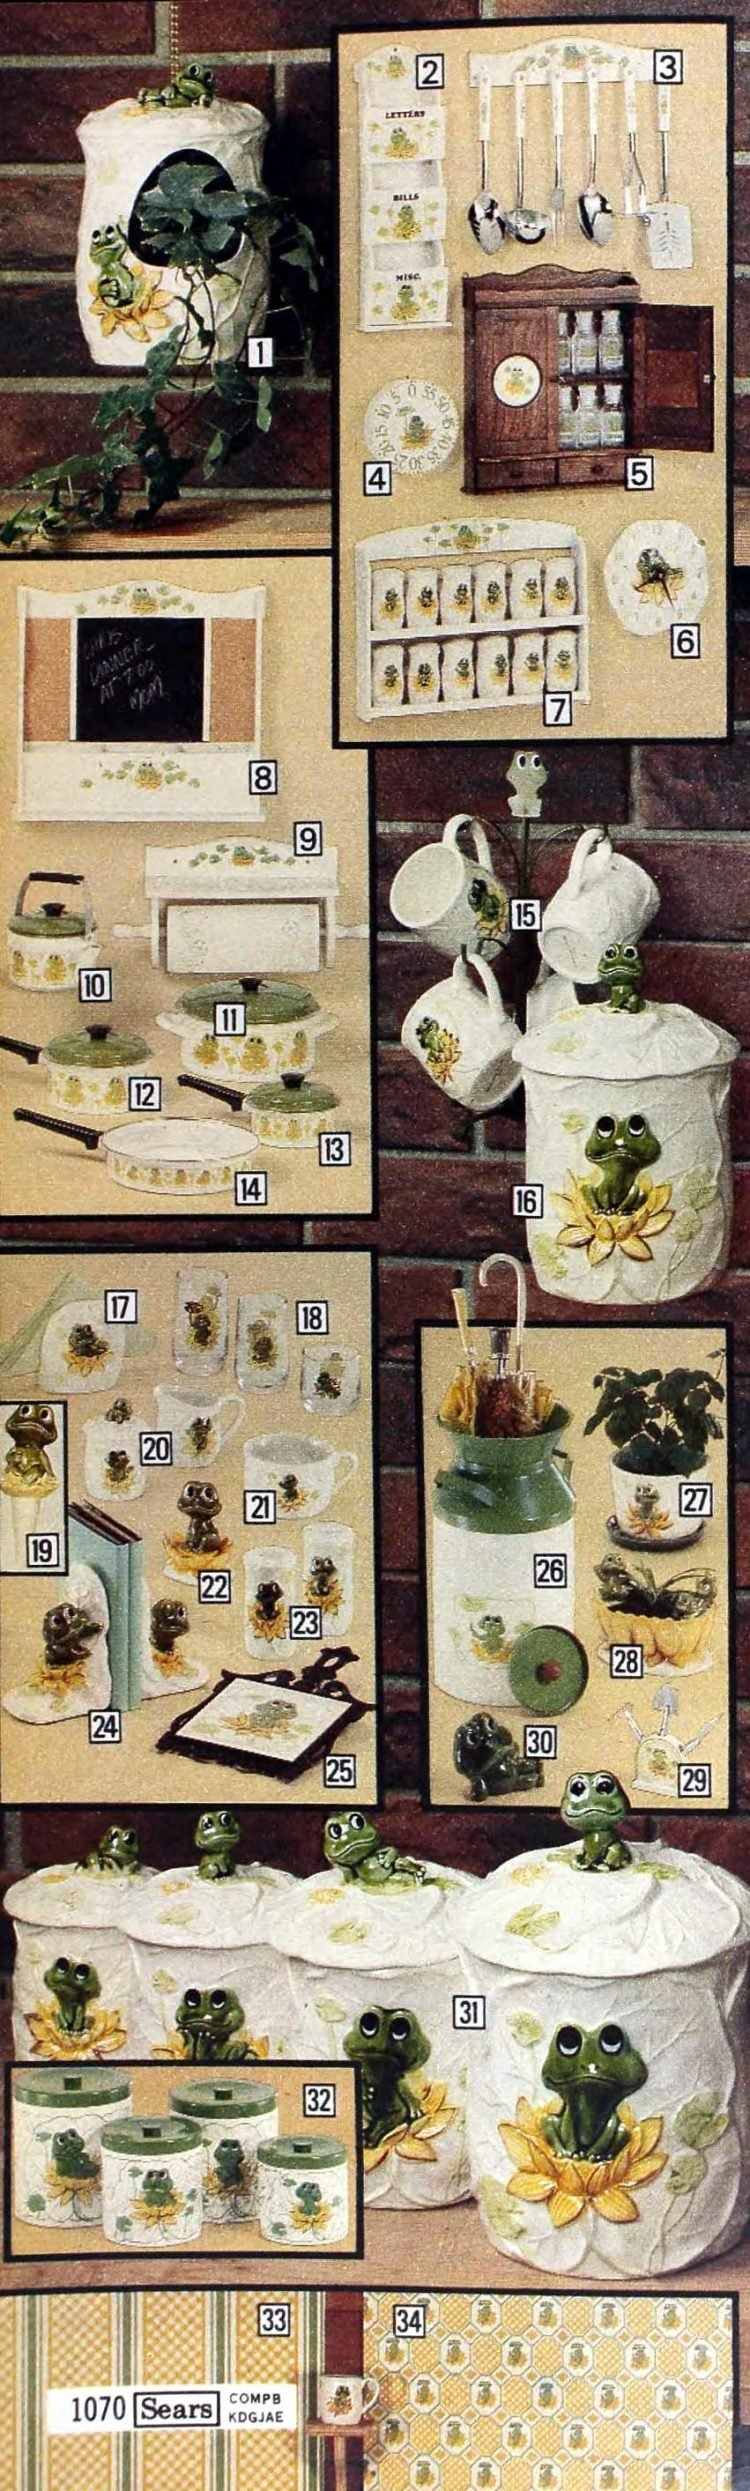 Frog Family vintage kitchen coordinates